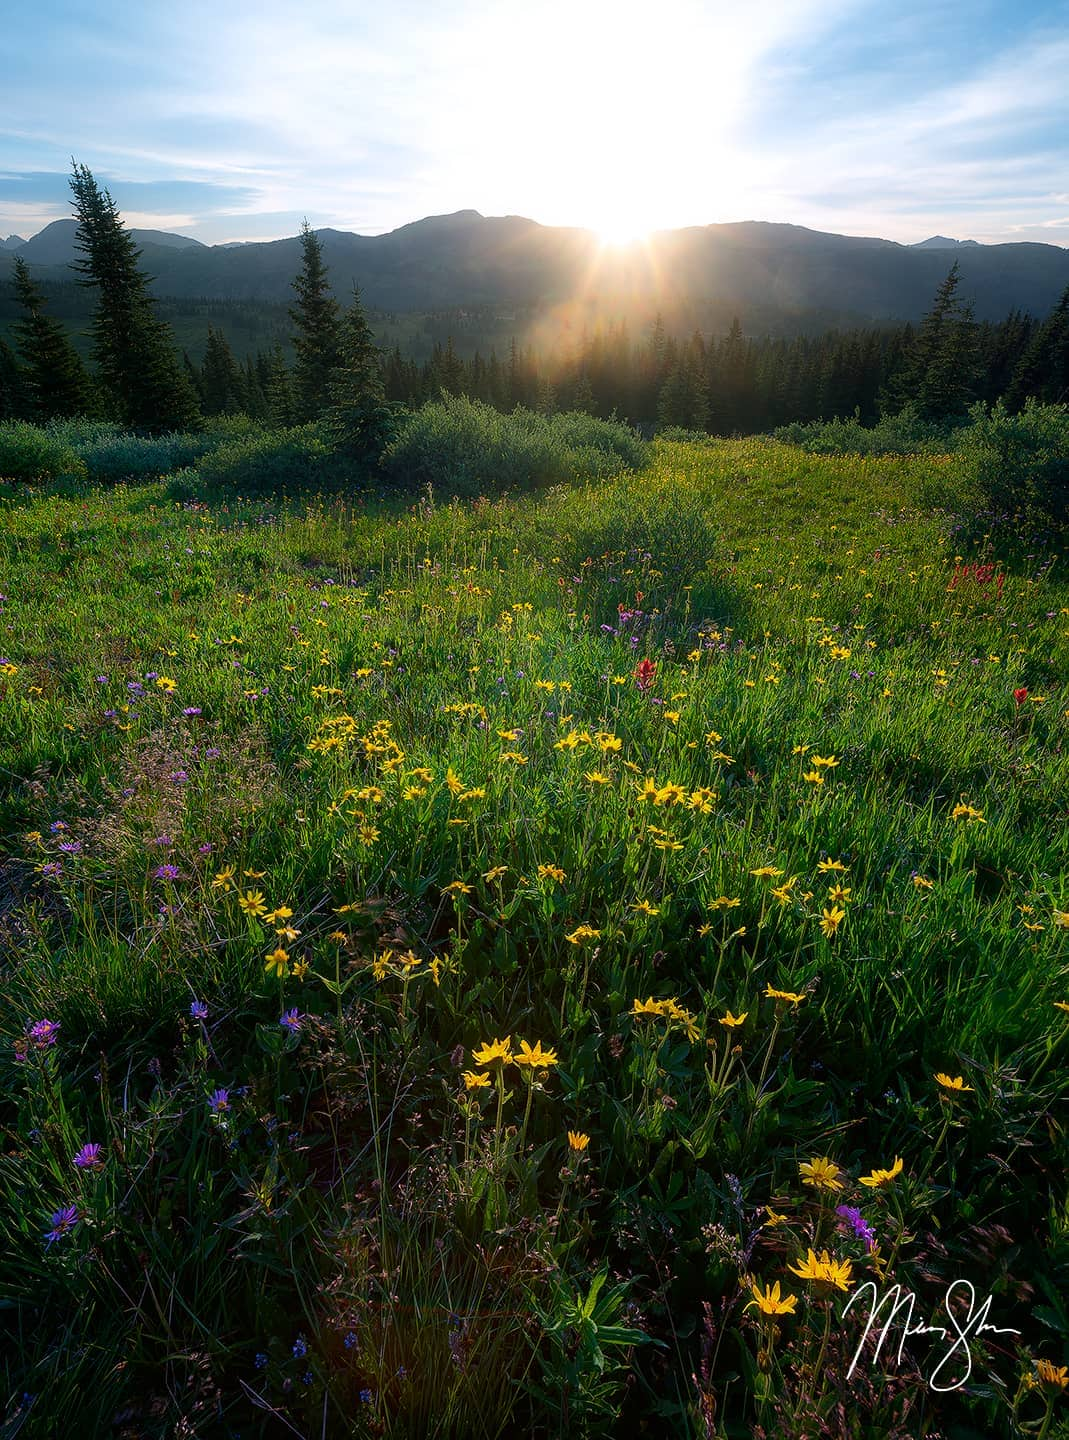 Open edition fine art print of Shrine Ridge Wildflower Sunburst from Mickey Shannon Photography. Location: Shrine Pass, Colorado